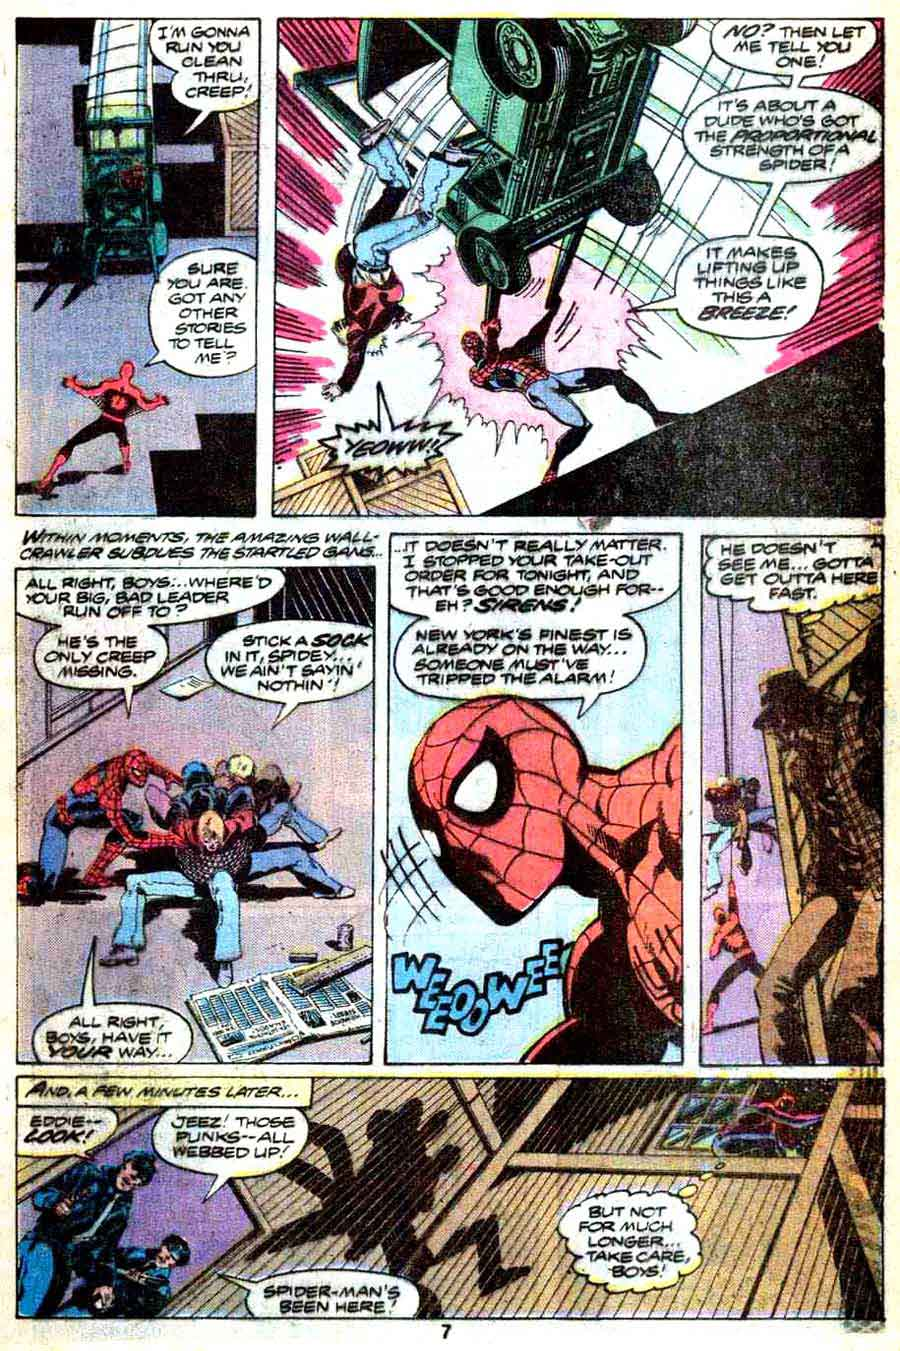 Amazing Spider-Man v1 annual #13 marvel comic book page art by John Byrne